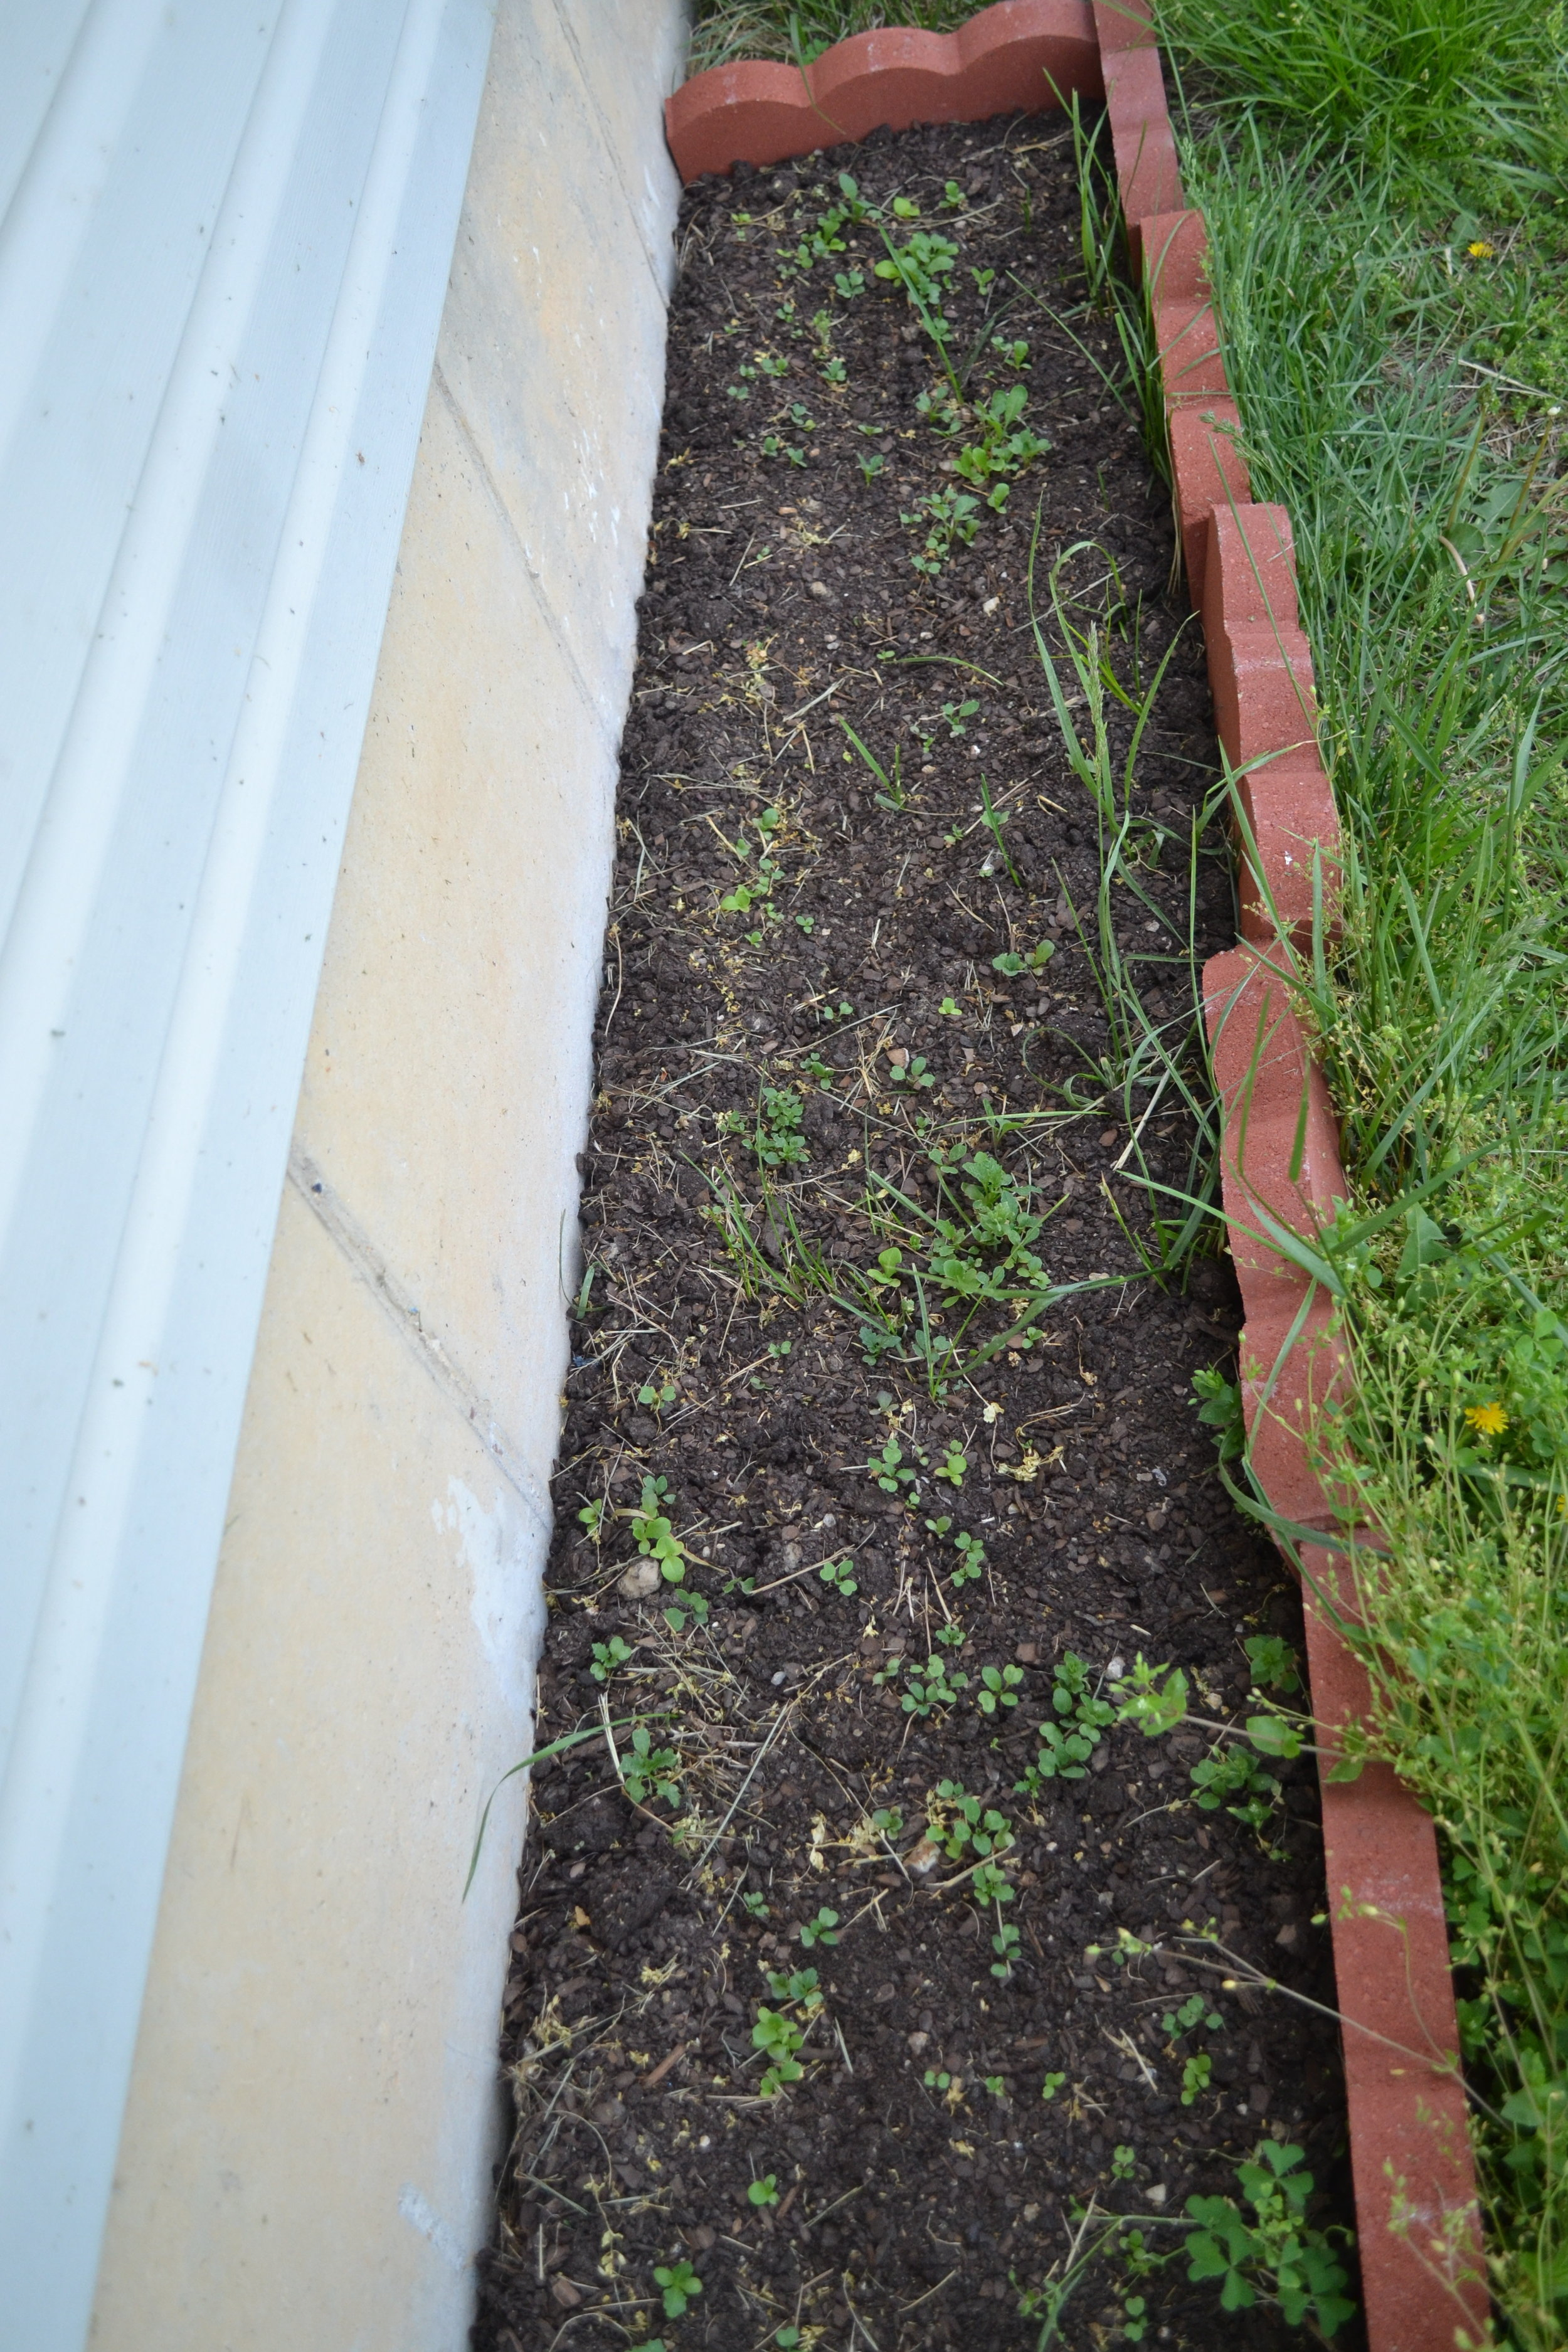 Backyard raised bed - Salad greens...that are currently overrun with chickweed, clover, and dead grass from the mower